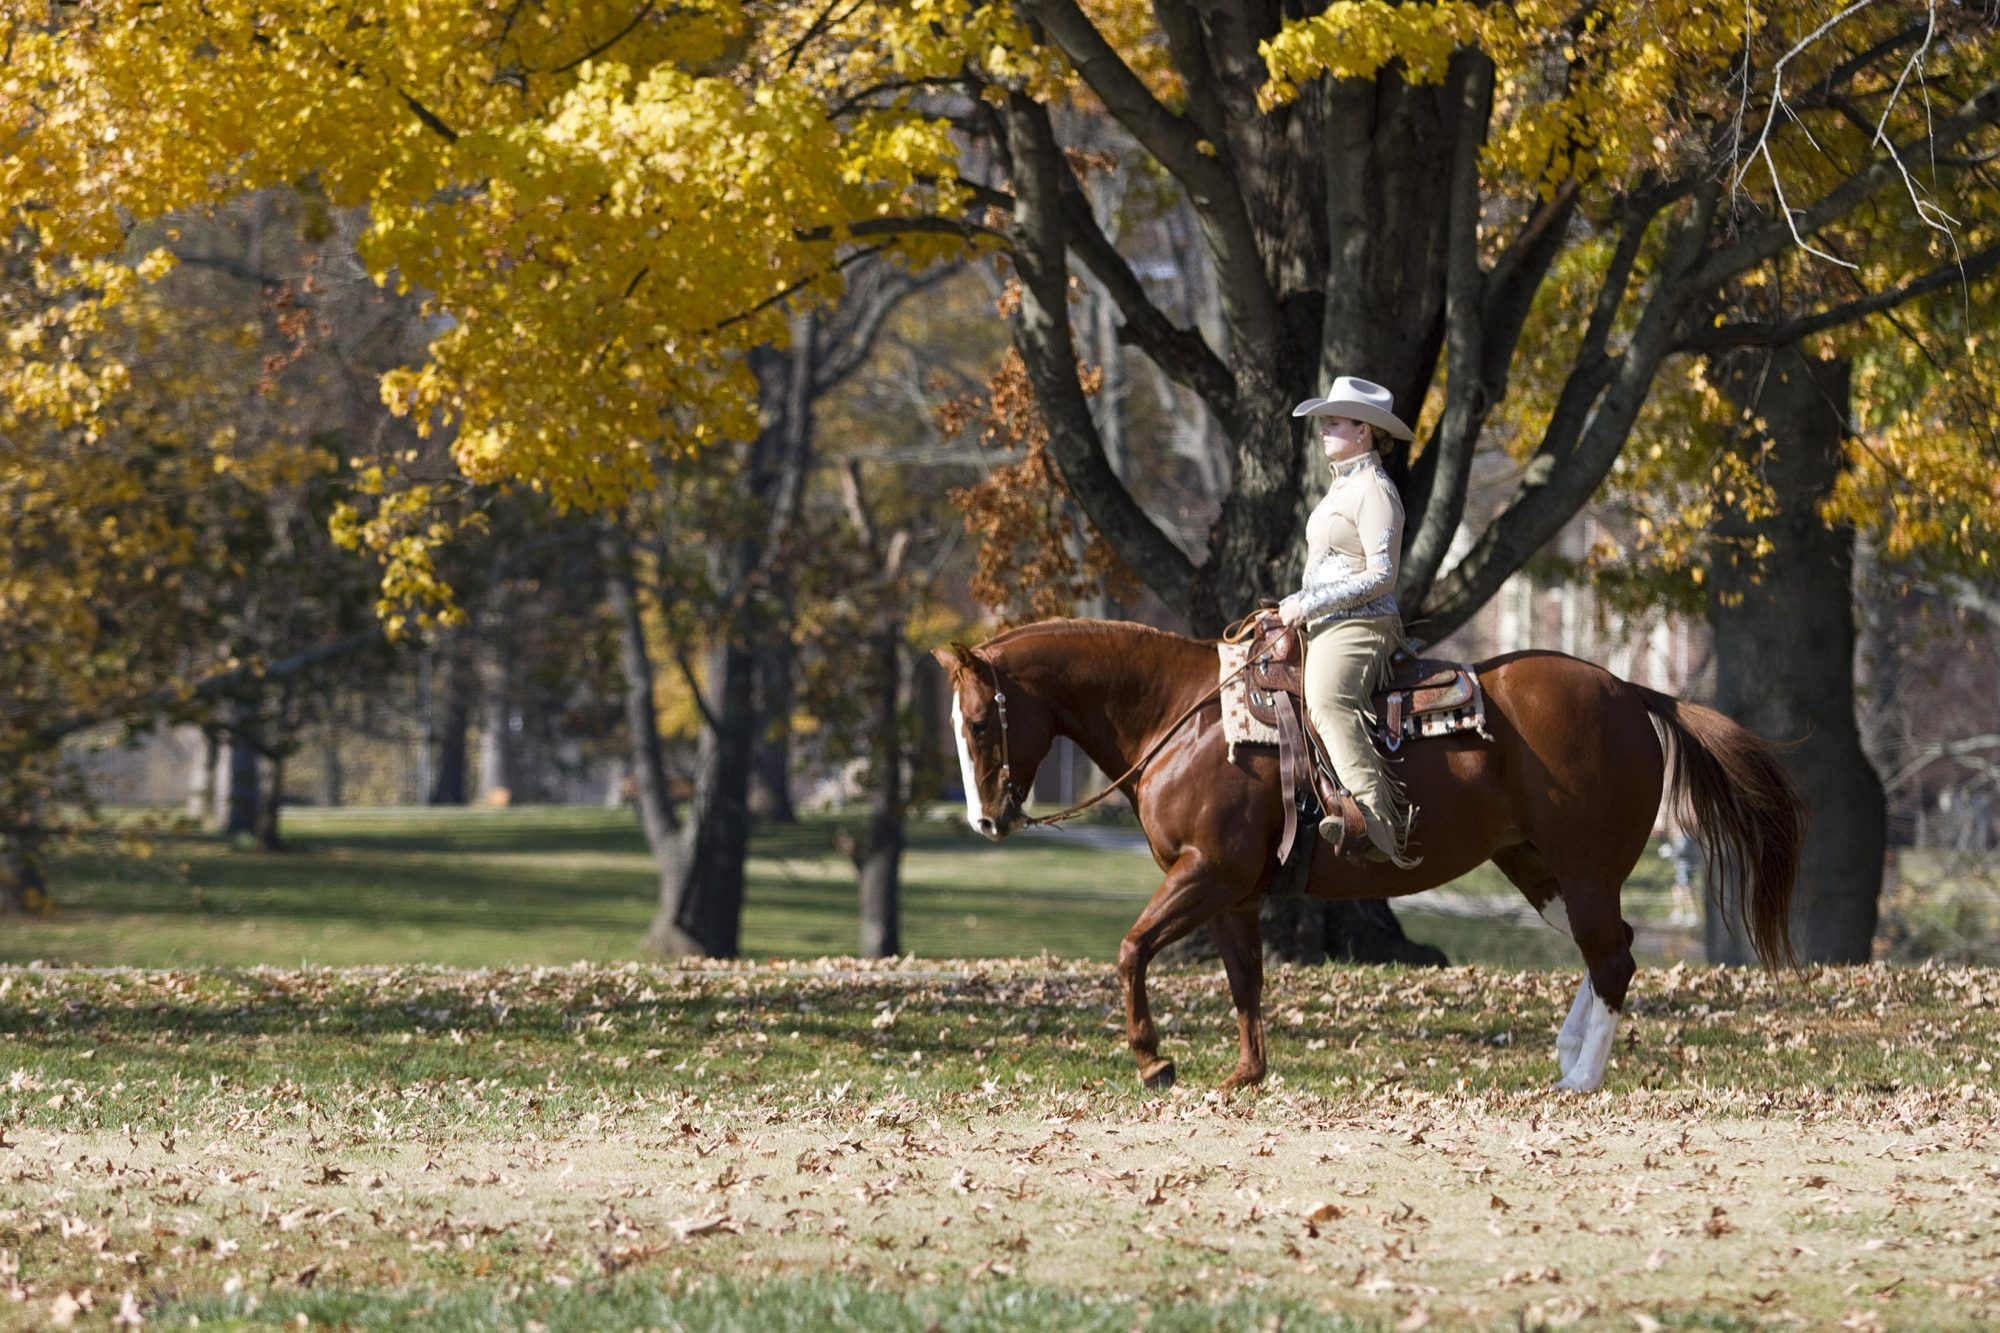 Western rider in the center of campus.